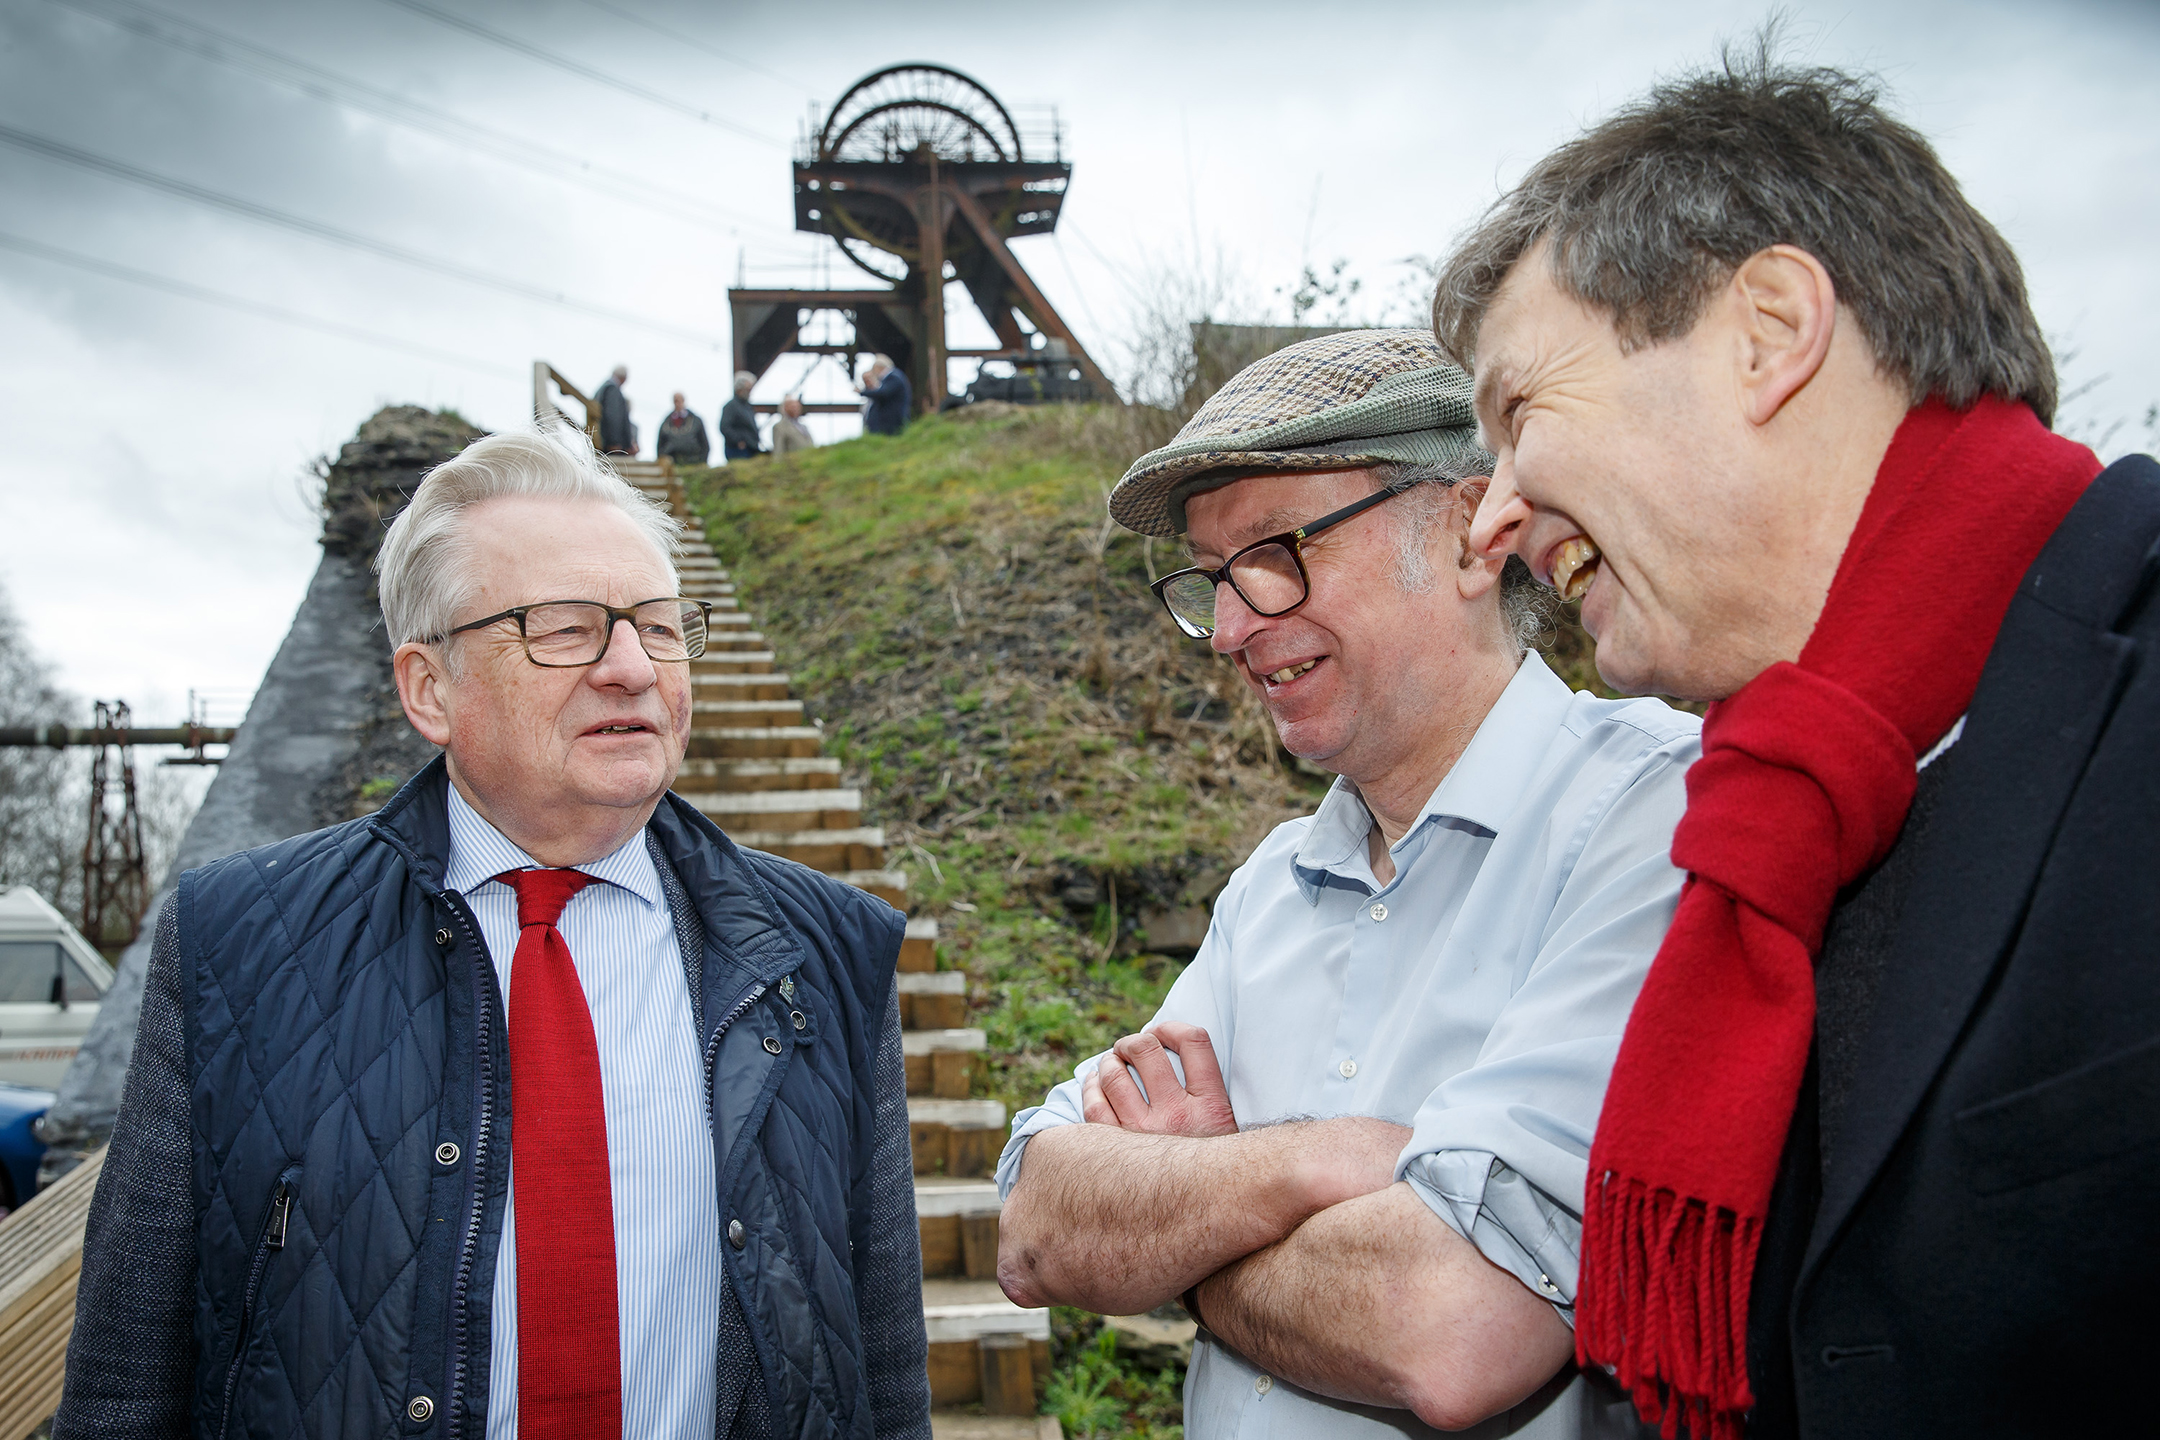 The Heritage Angel Awards Wales scheme was launched by Wales's Heritage Minister, Dafydd Elis-Thomas, during his visit to Hetty Winding House, near Pontypridd on 16 April 2018. Left to Right: Dafydd Elis-Thomas, Wales's Heritage Minister, Brian Davies, Great Western Colliery Preservation Trust, and Christopher Catling The Secretary (CEO), RCAHMW.